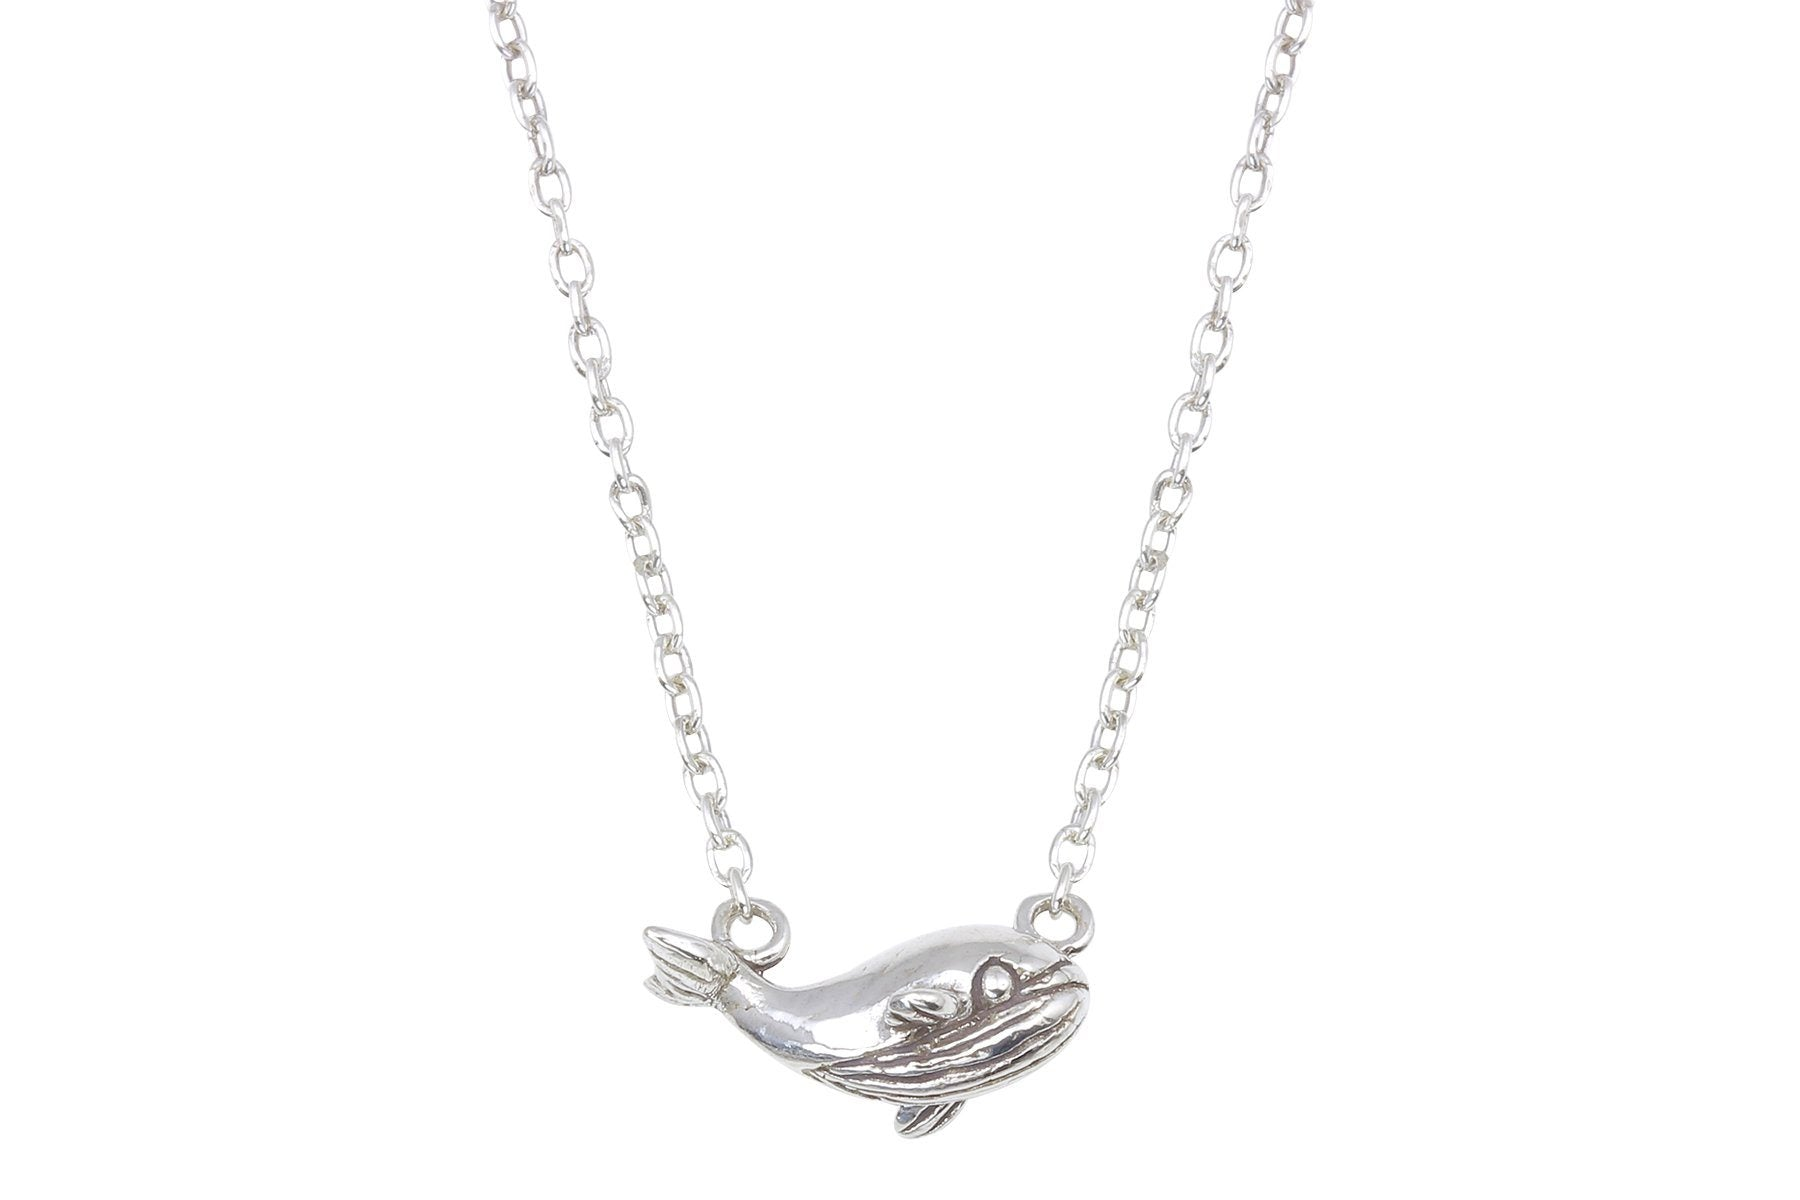 Tiny sterling silver whale necklace - Amanda K Lockrow